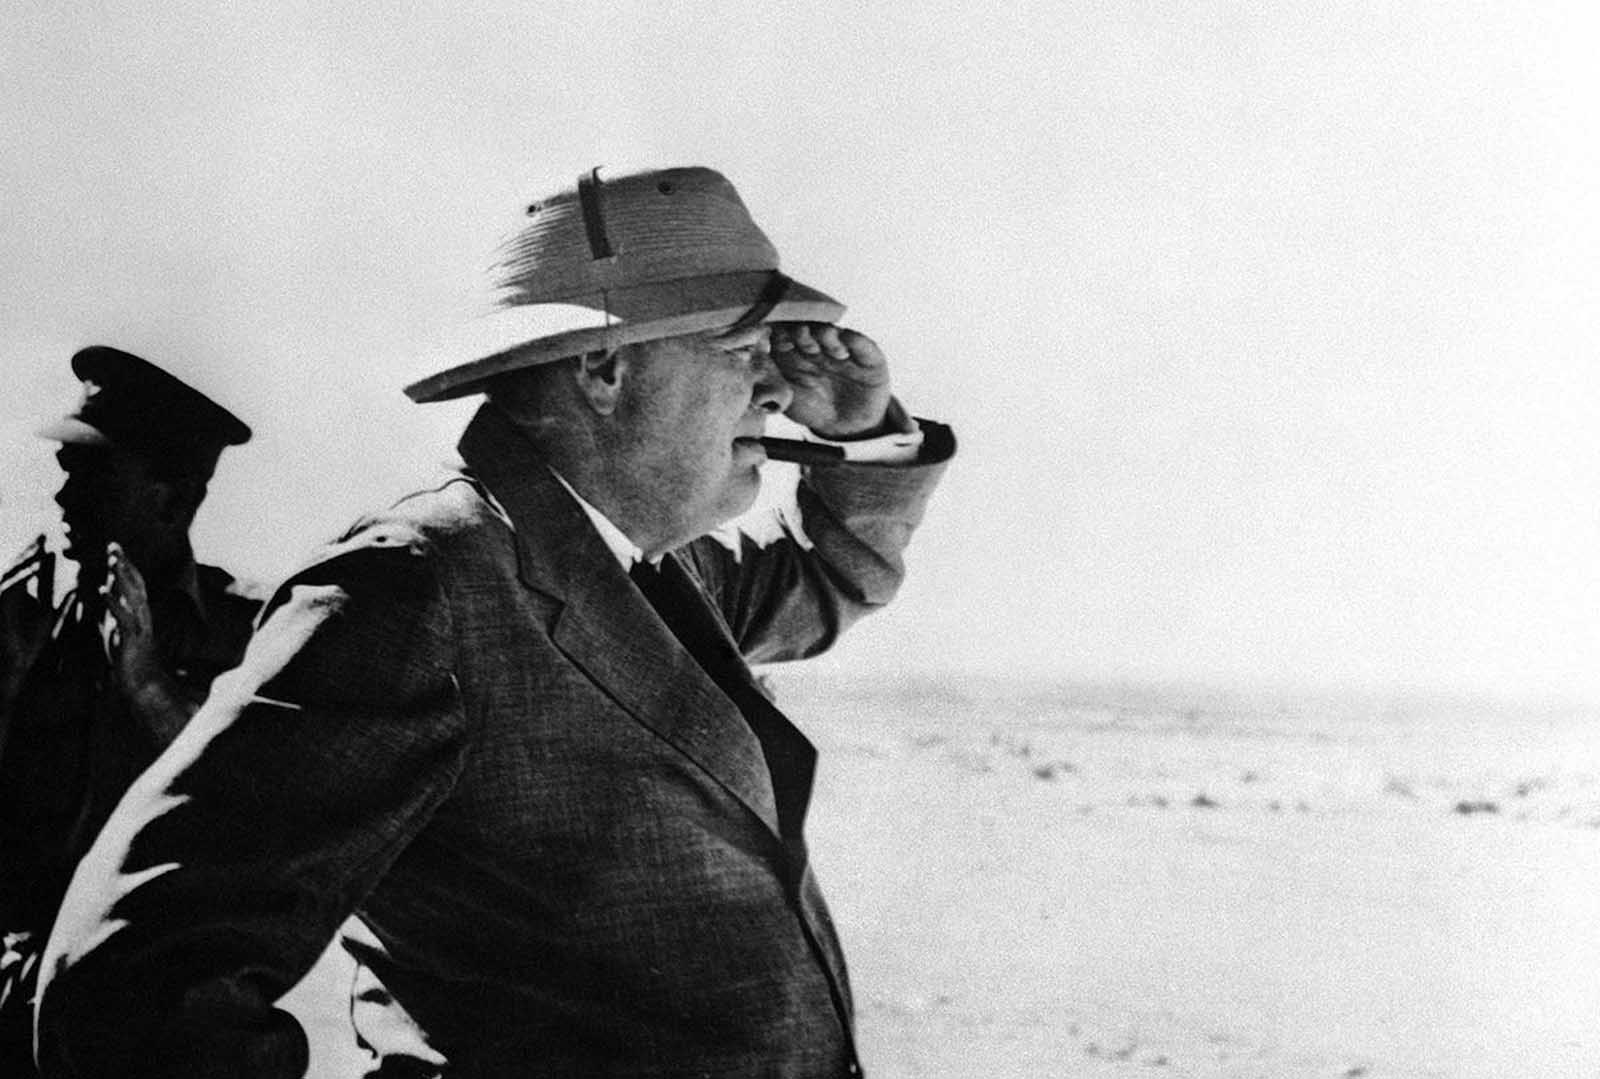 During his stay in the Middle East, Britain's Prime Minister Winston Churchill paid a visit to the Alamein area, meeting brigade and divisional commanders, visiting a gun site, and inspecting personnel of Australian and South African divisions, on August 19, 1942 in the western desert.